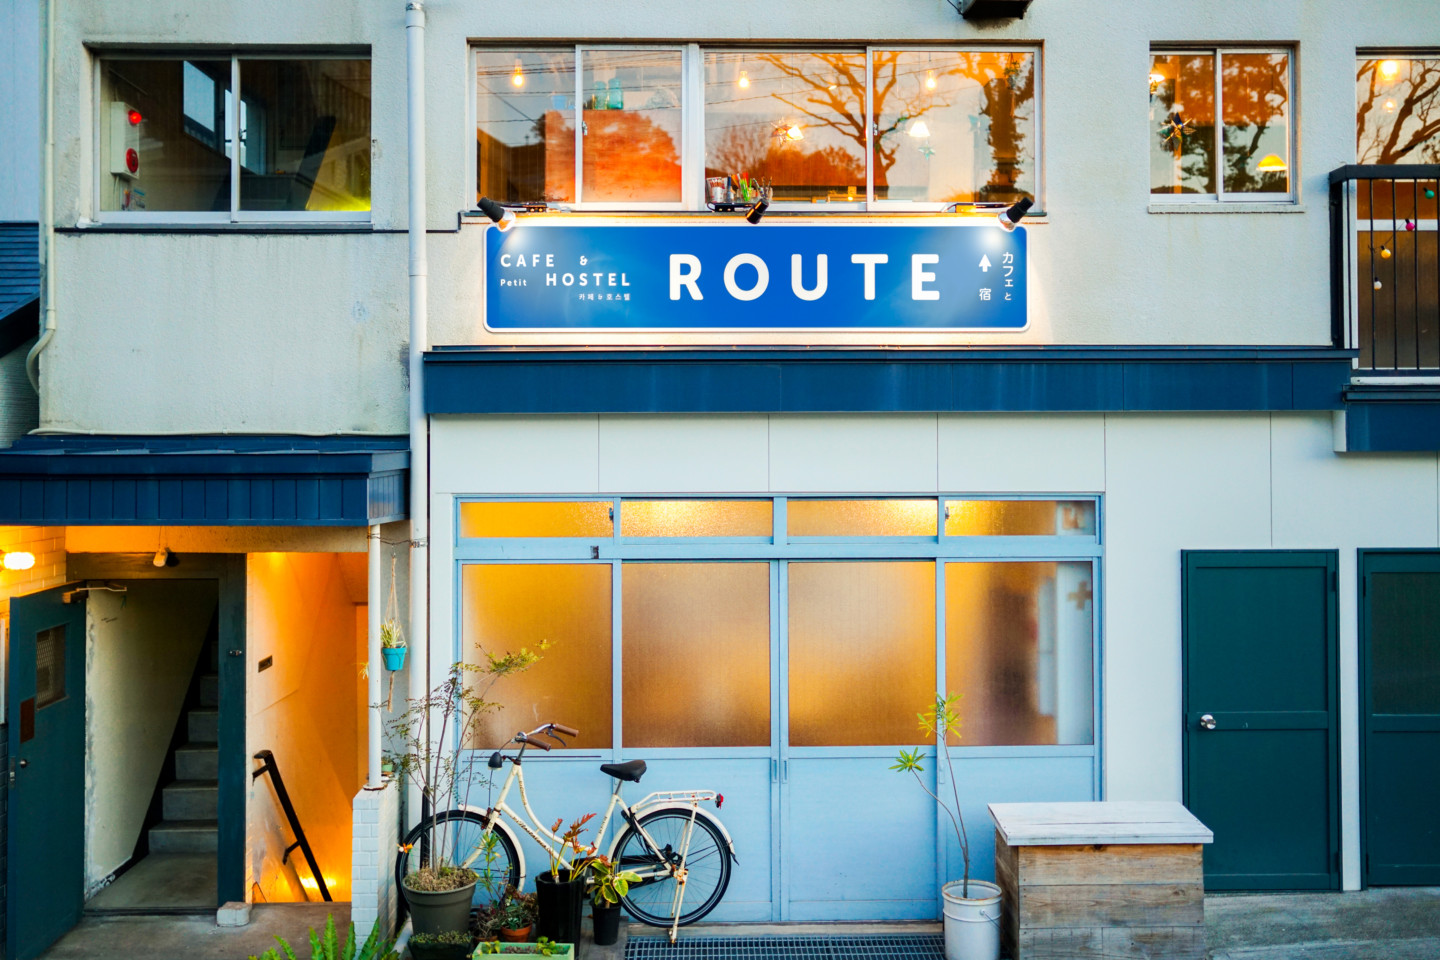 CAFE & Petit HOSTEL ROUTE